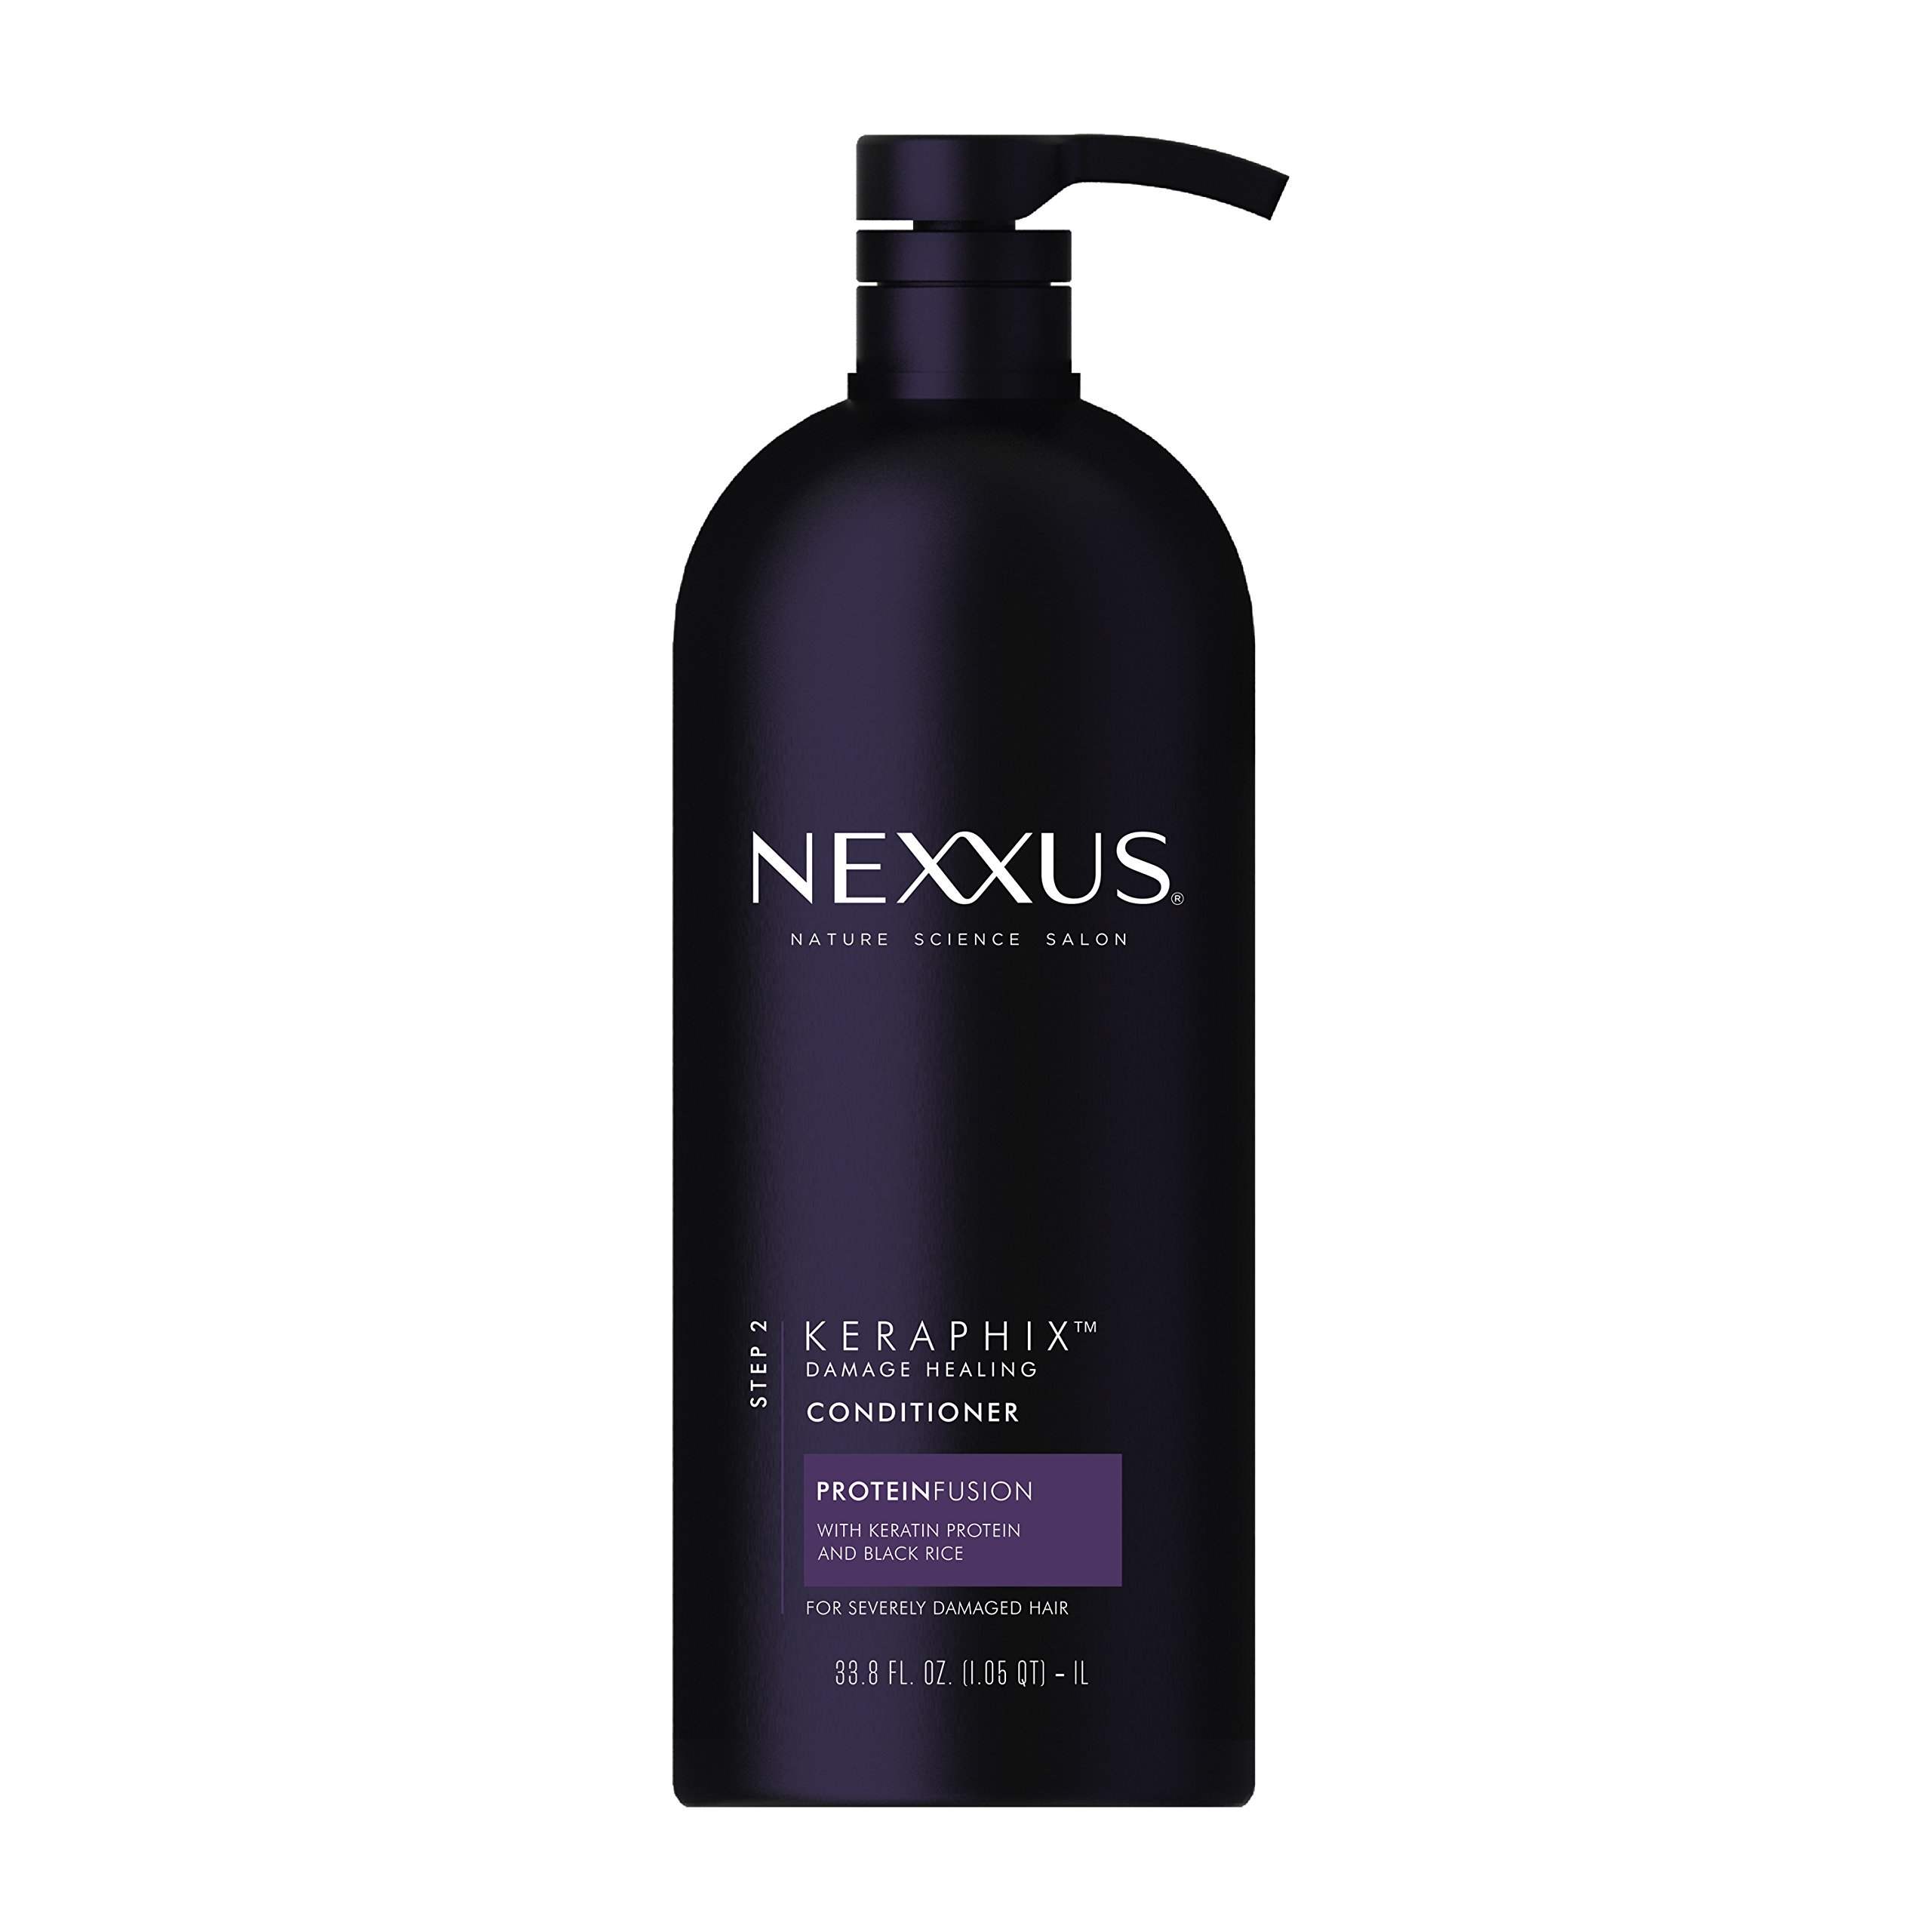 Nexxus Keraphix Conditioner, for Damaged Hair, 33.8 oz